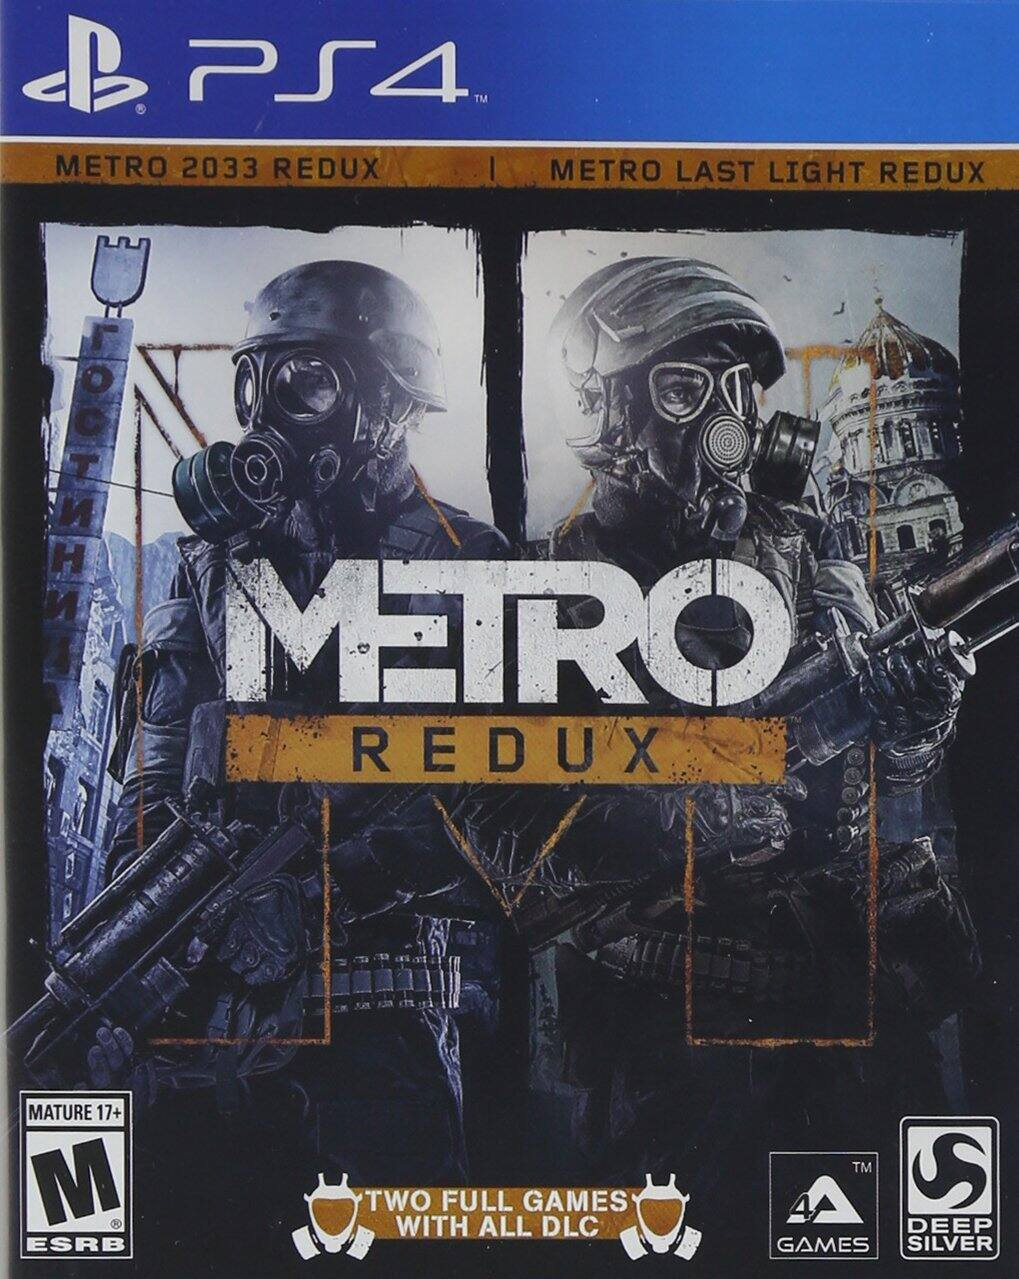 Metro Redux $24.99 at Best buy and Amazon both PS4 and Xbox One